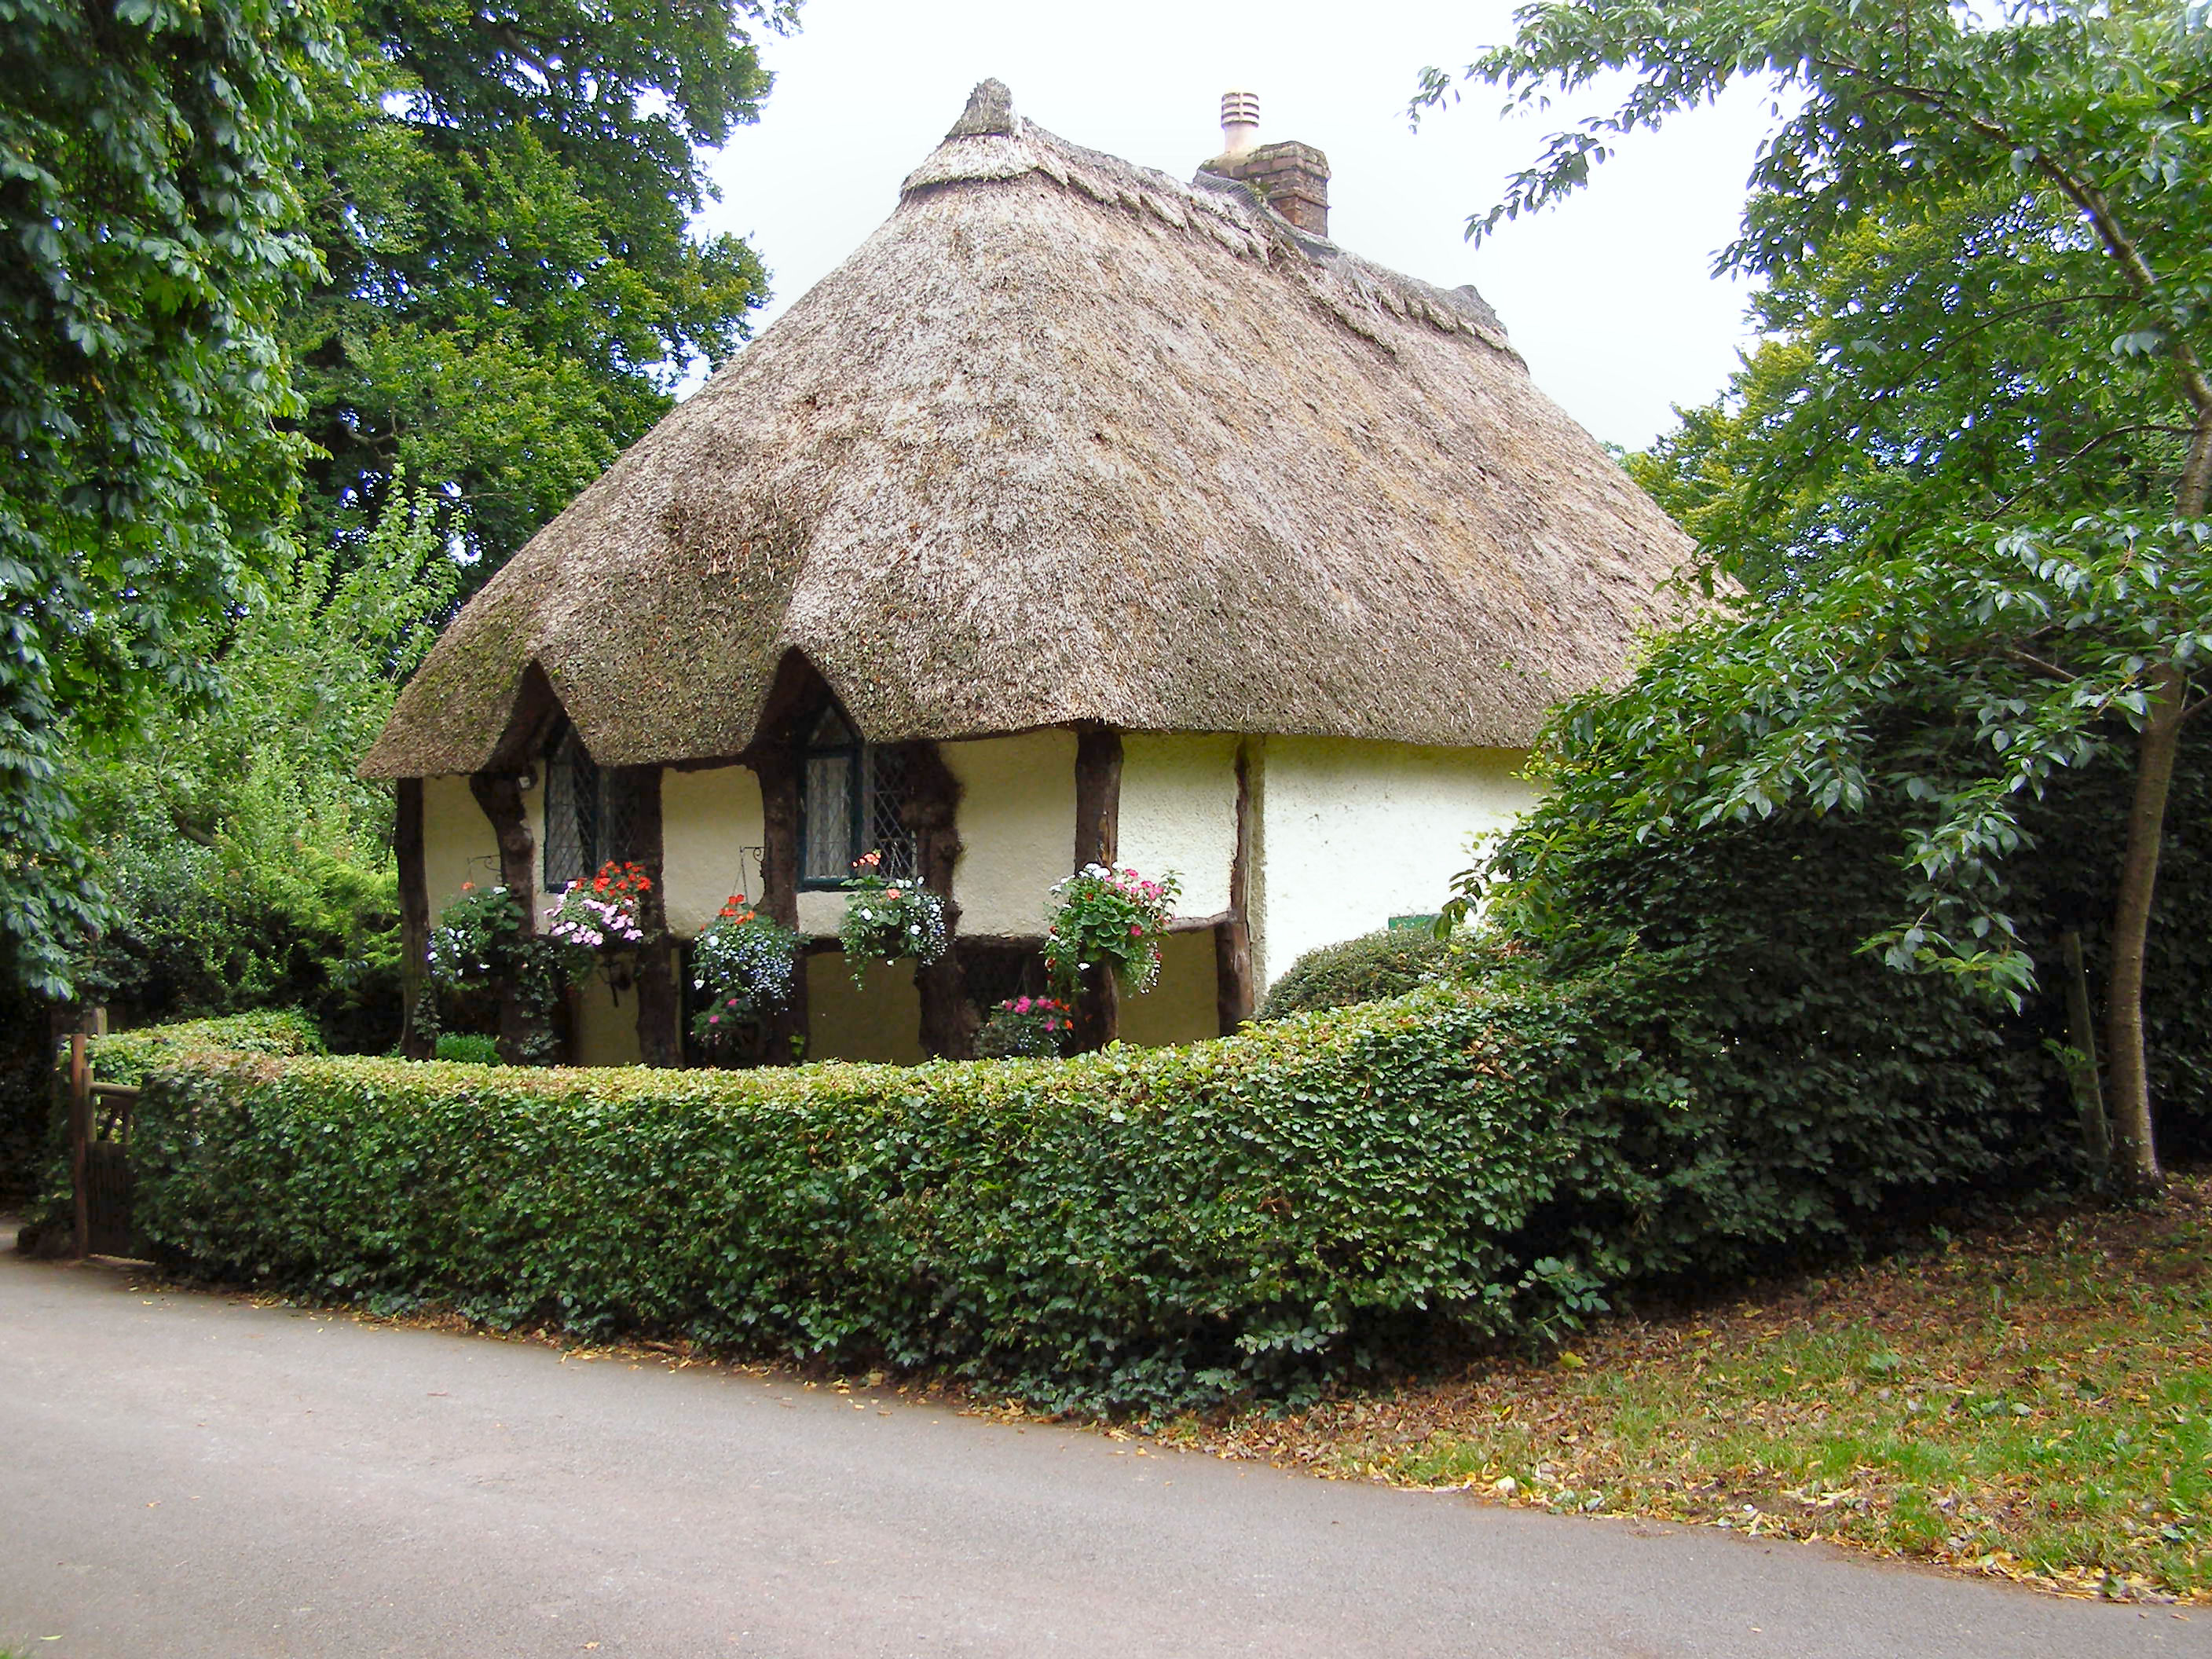 Trends vcv beautiful places to see in uk - The thatched cottage ...